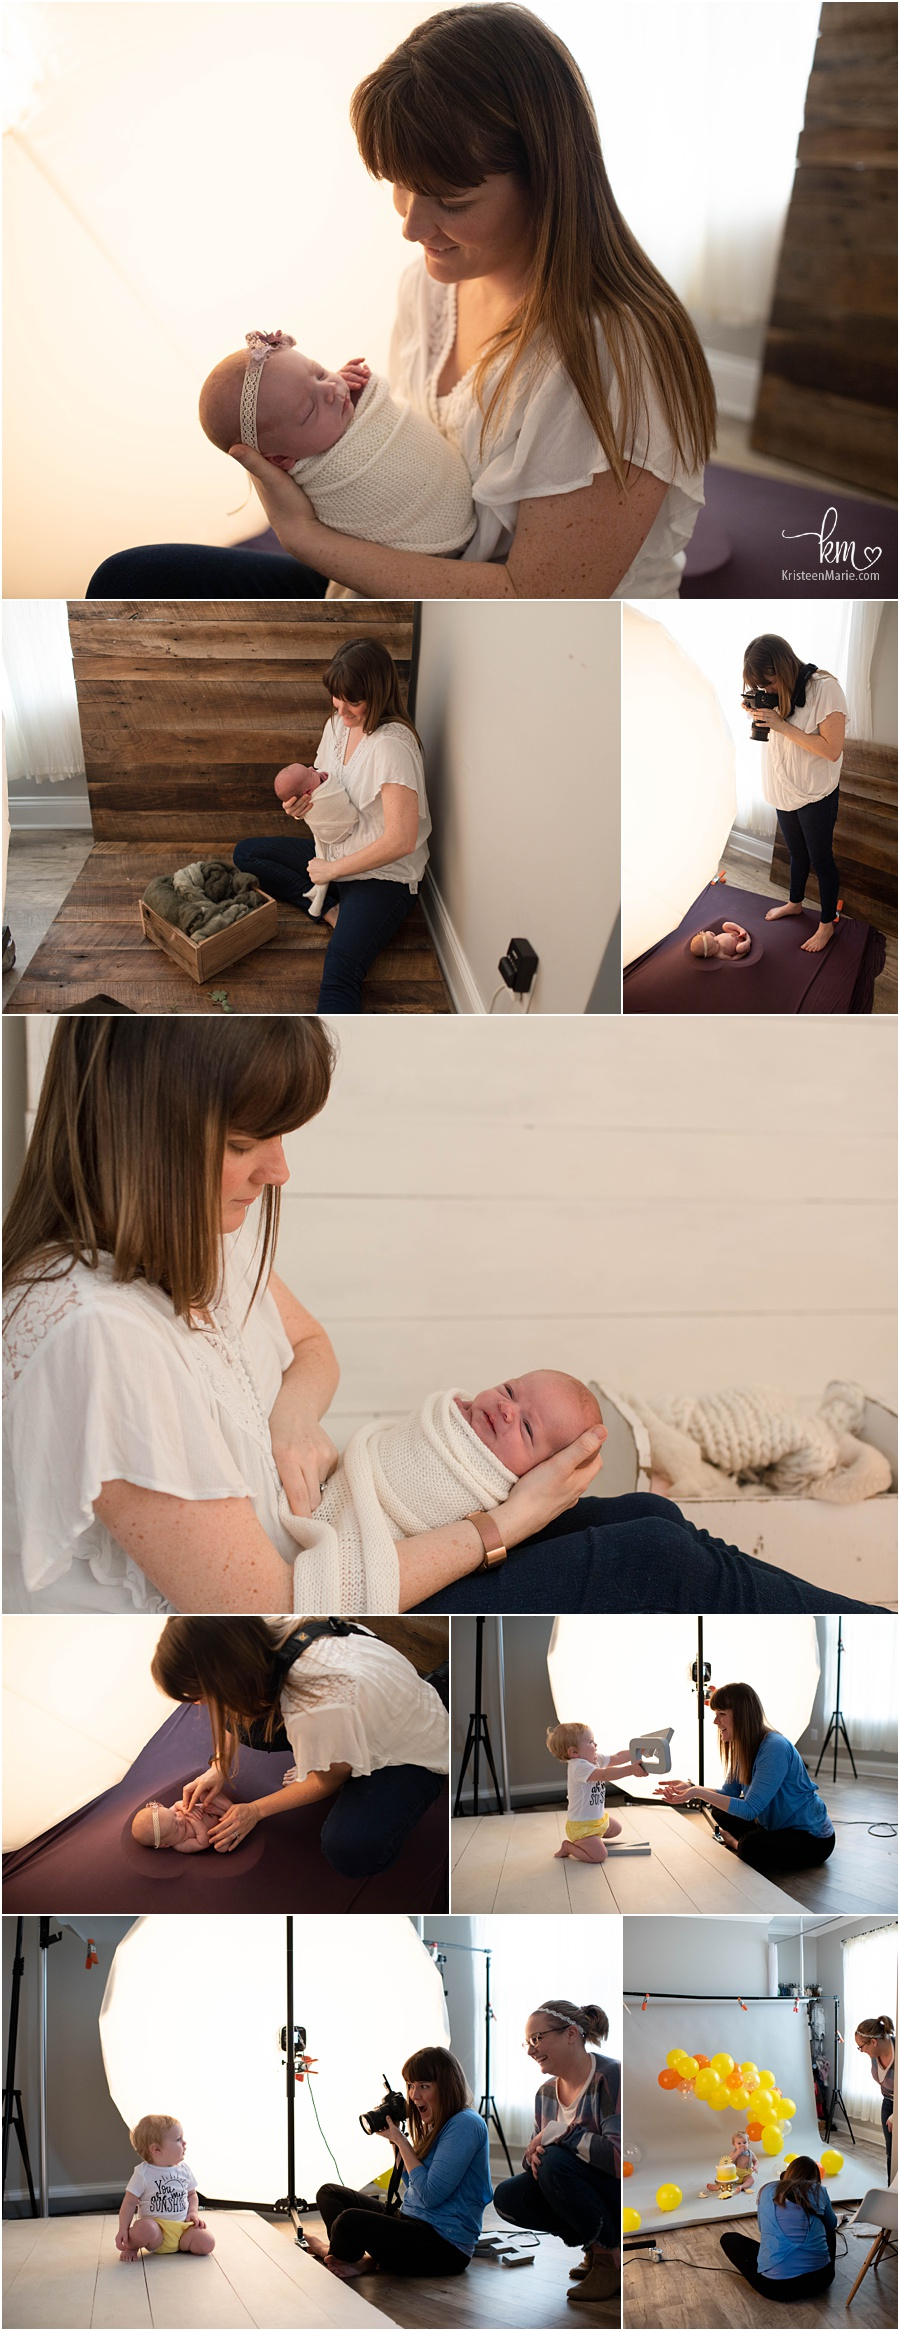 behind the scenes of a newborn photography session - the studio